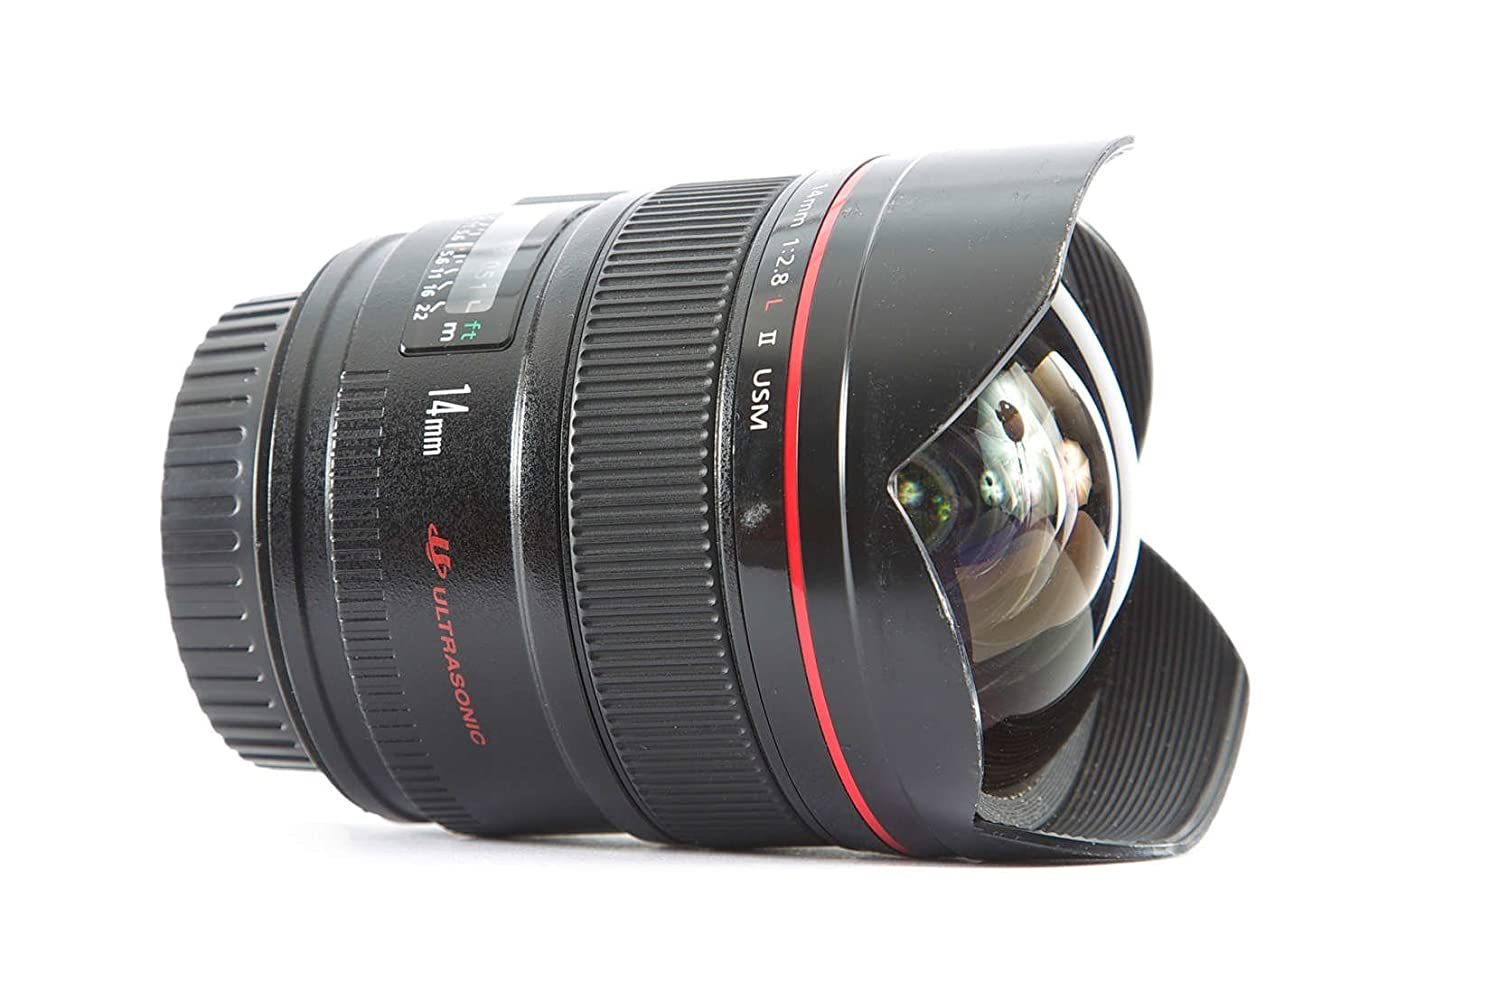 Canon EF 14mm f/2.8L II USM Ultra-Wide Angle Lens for Canon Digital SLR Cameras 2045B002